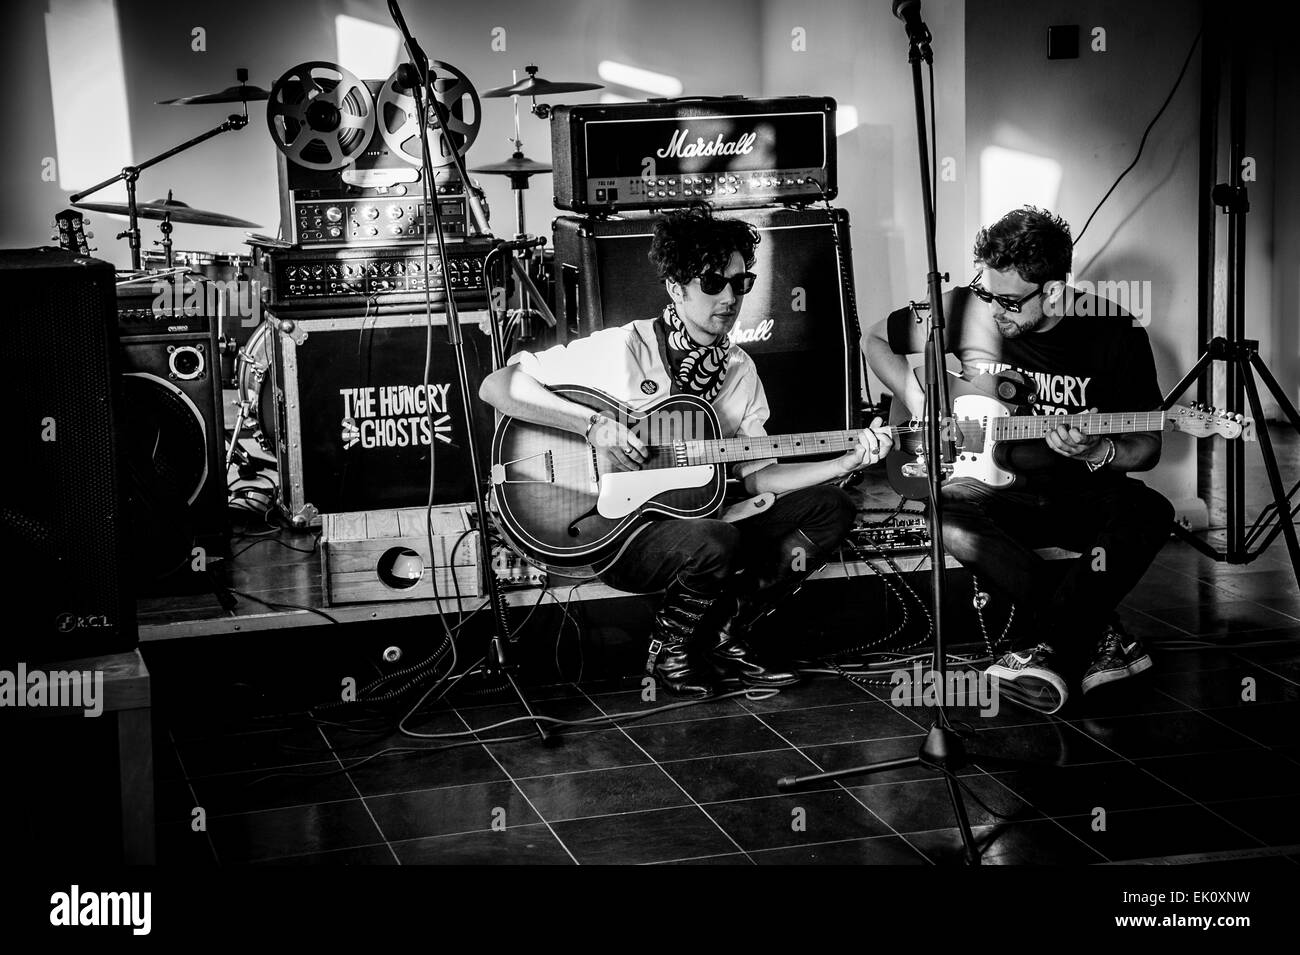 The Hungry Ghosts a Redditch U.K band tune up before playing a set at Death or Glory Records in Redditch Worcestershire - Stock Image